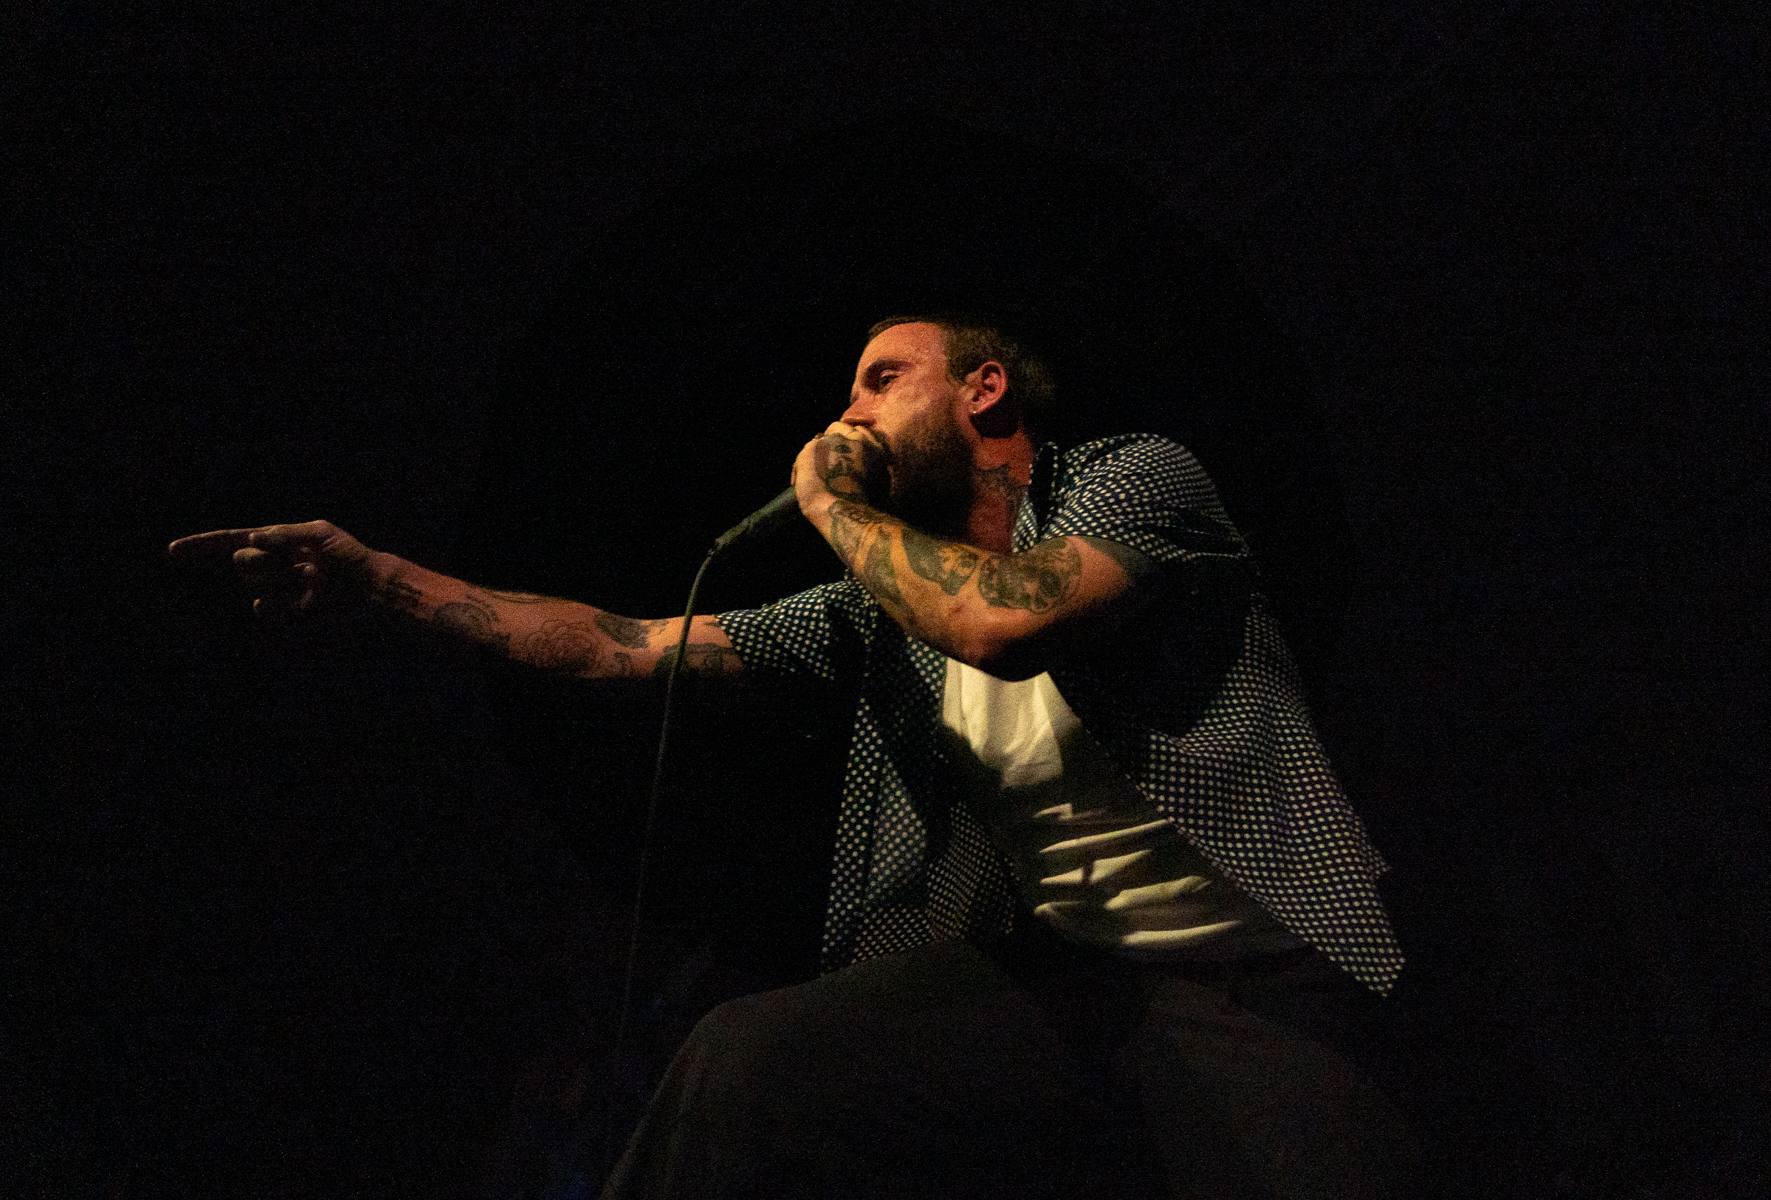 Idles_FirstAvenue_080319_Chris_Goyette_19